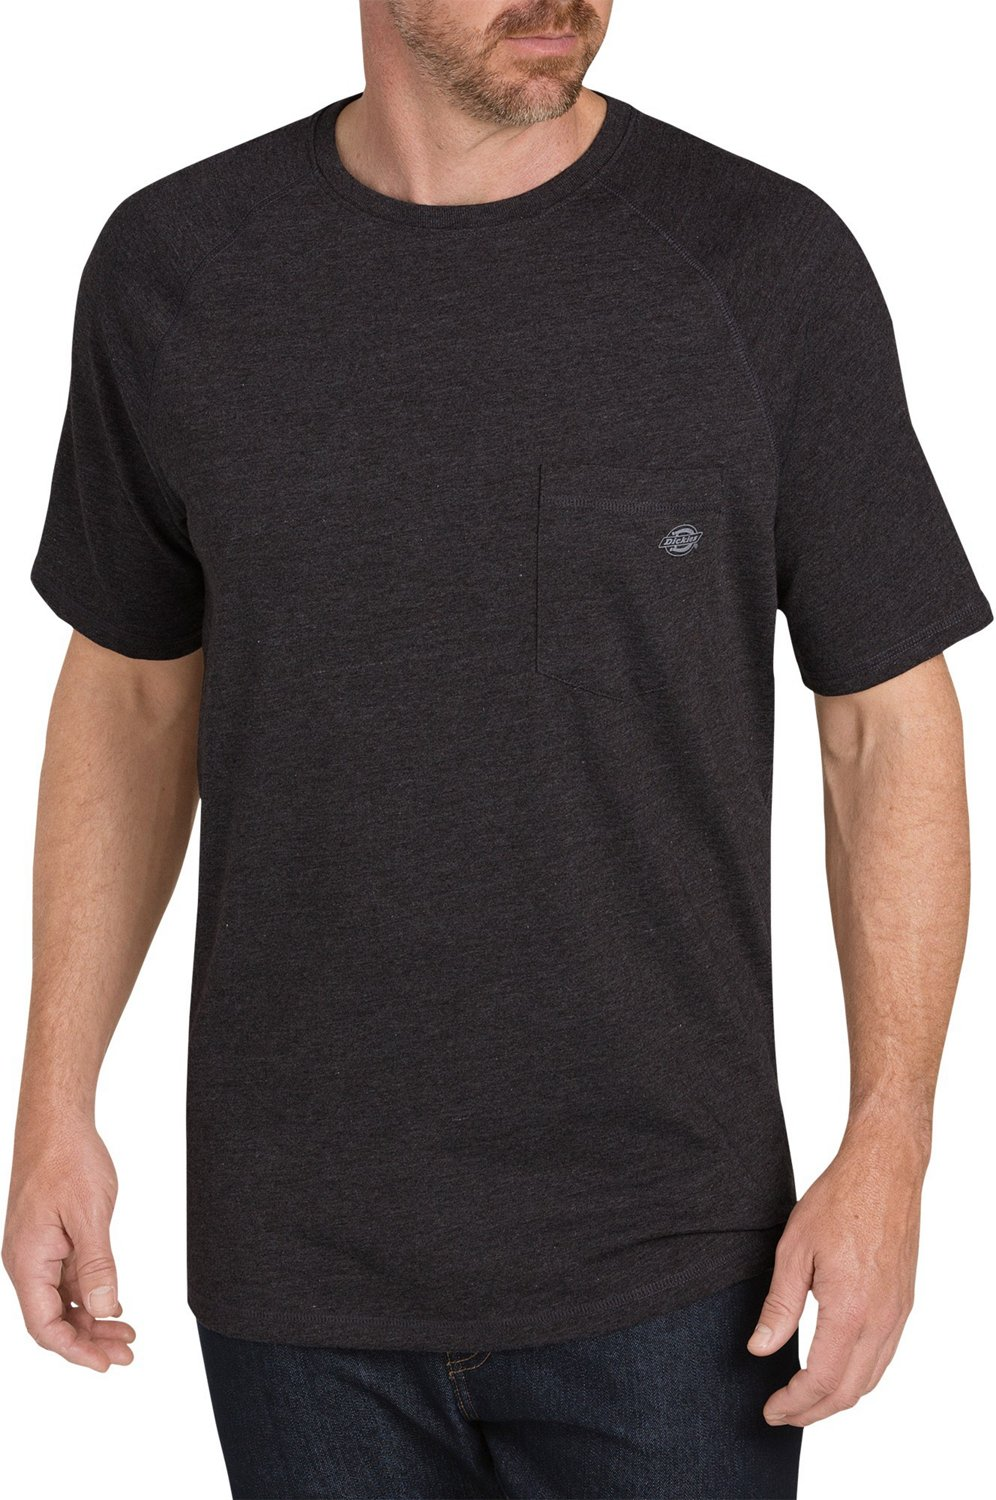 0b4e917c Display product reviews for Dickies Men's Temp-iQ Performance Cooling T- shirt